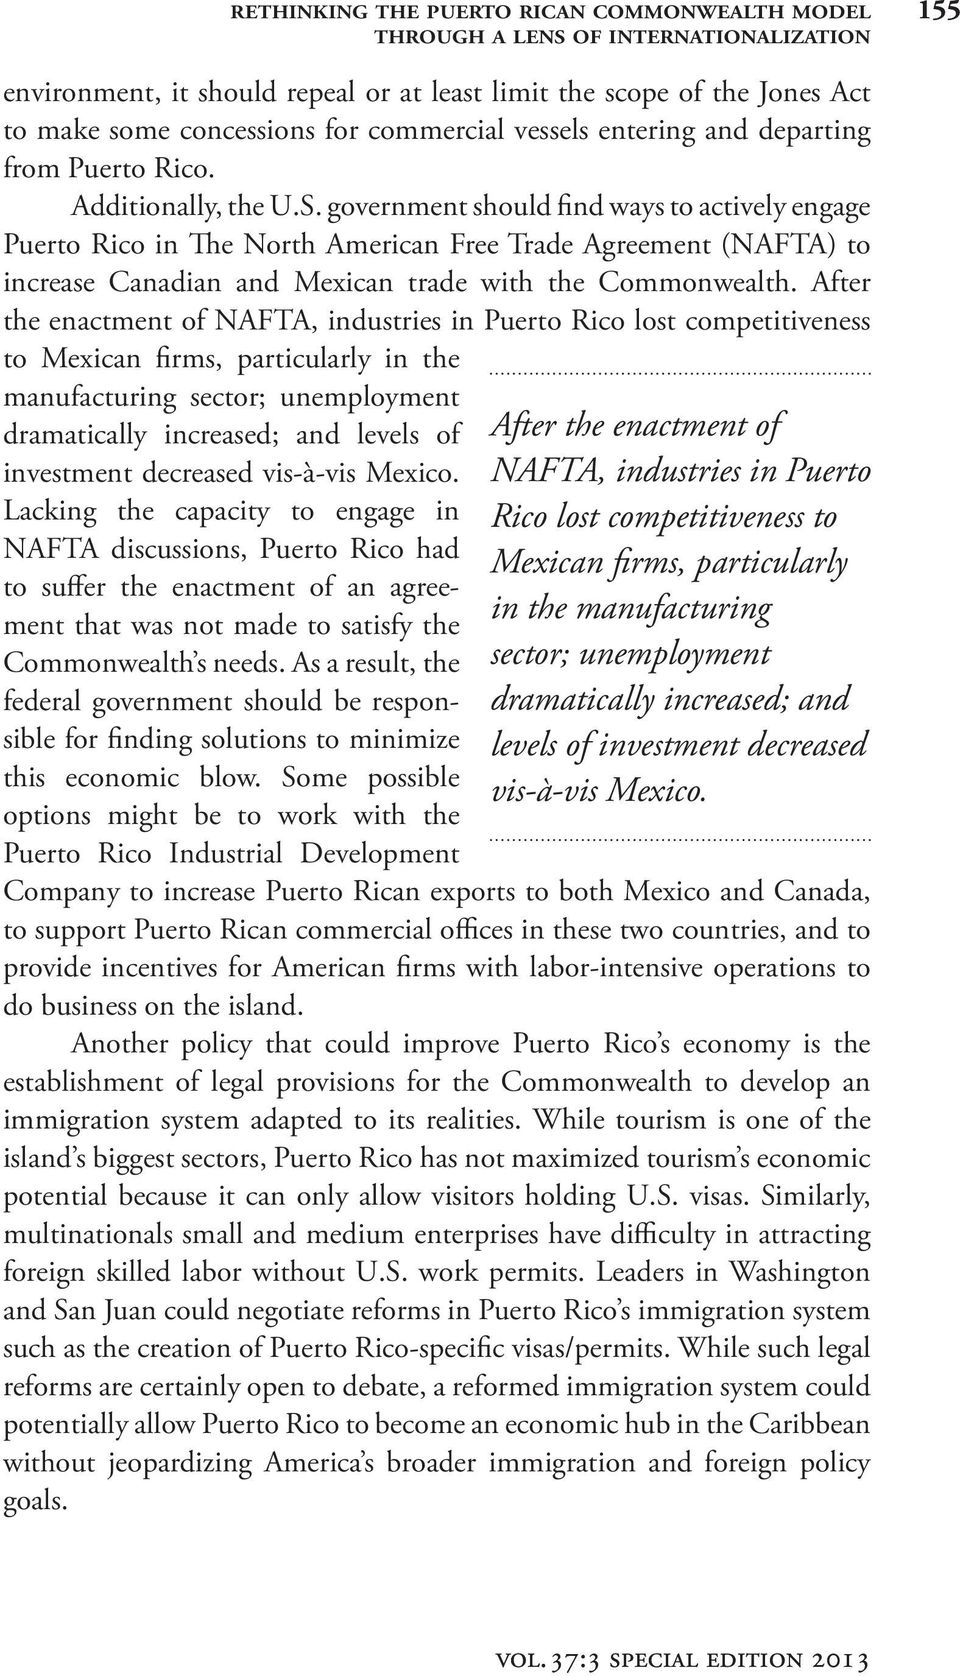 government should find ways to actively engage Puerto Rico in The North American Free Trade Agreement (NAFTA) to increase Canadian and Mexican trade with the Commonwealth.